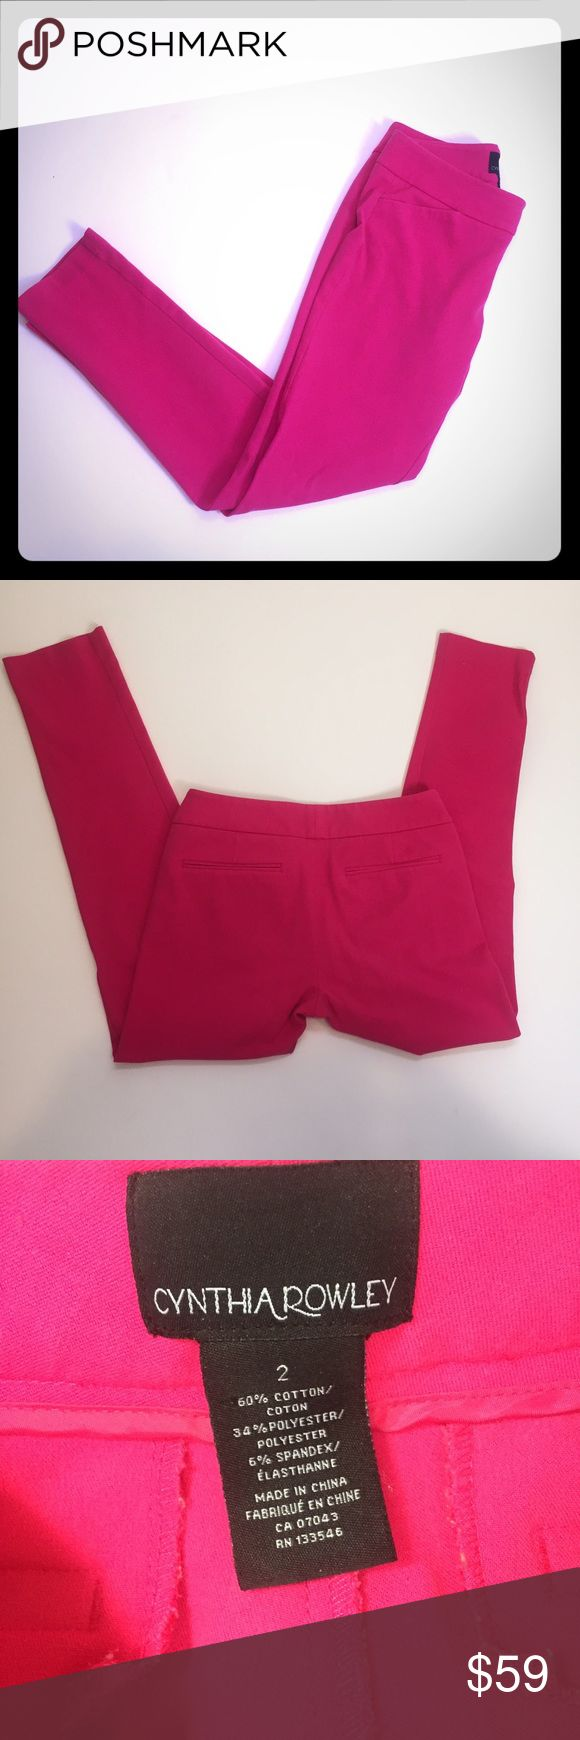 Hot pink Cynthia Rowley skinny dress pants size 2 Gorgeous Hot pink Cynthia Rowley skinny dress pants size 2. Excellent used condition, no flaws. No trades please. Cynthia Rowley Pants Skinny